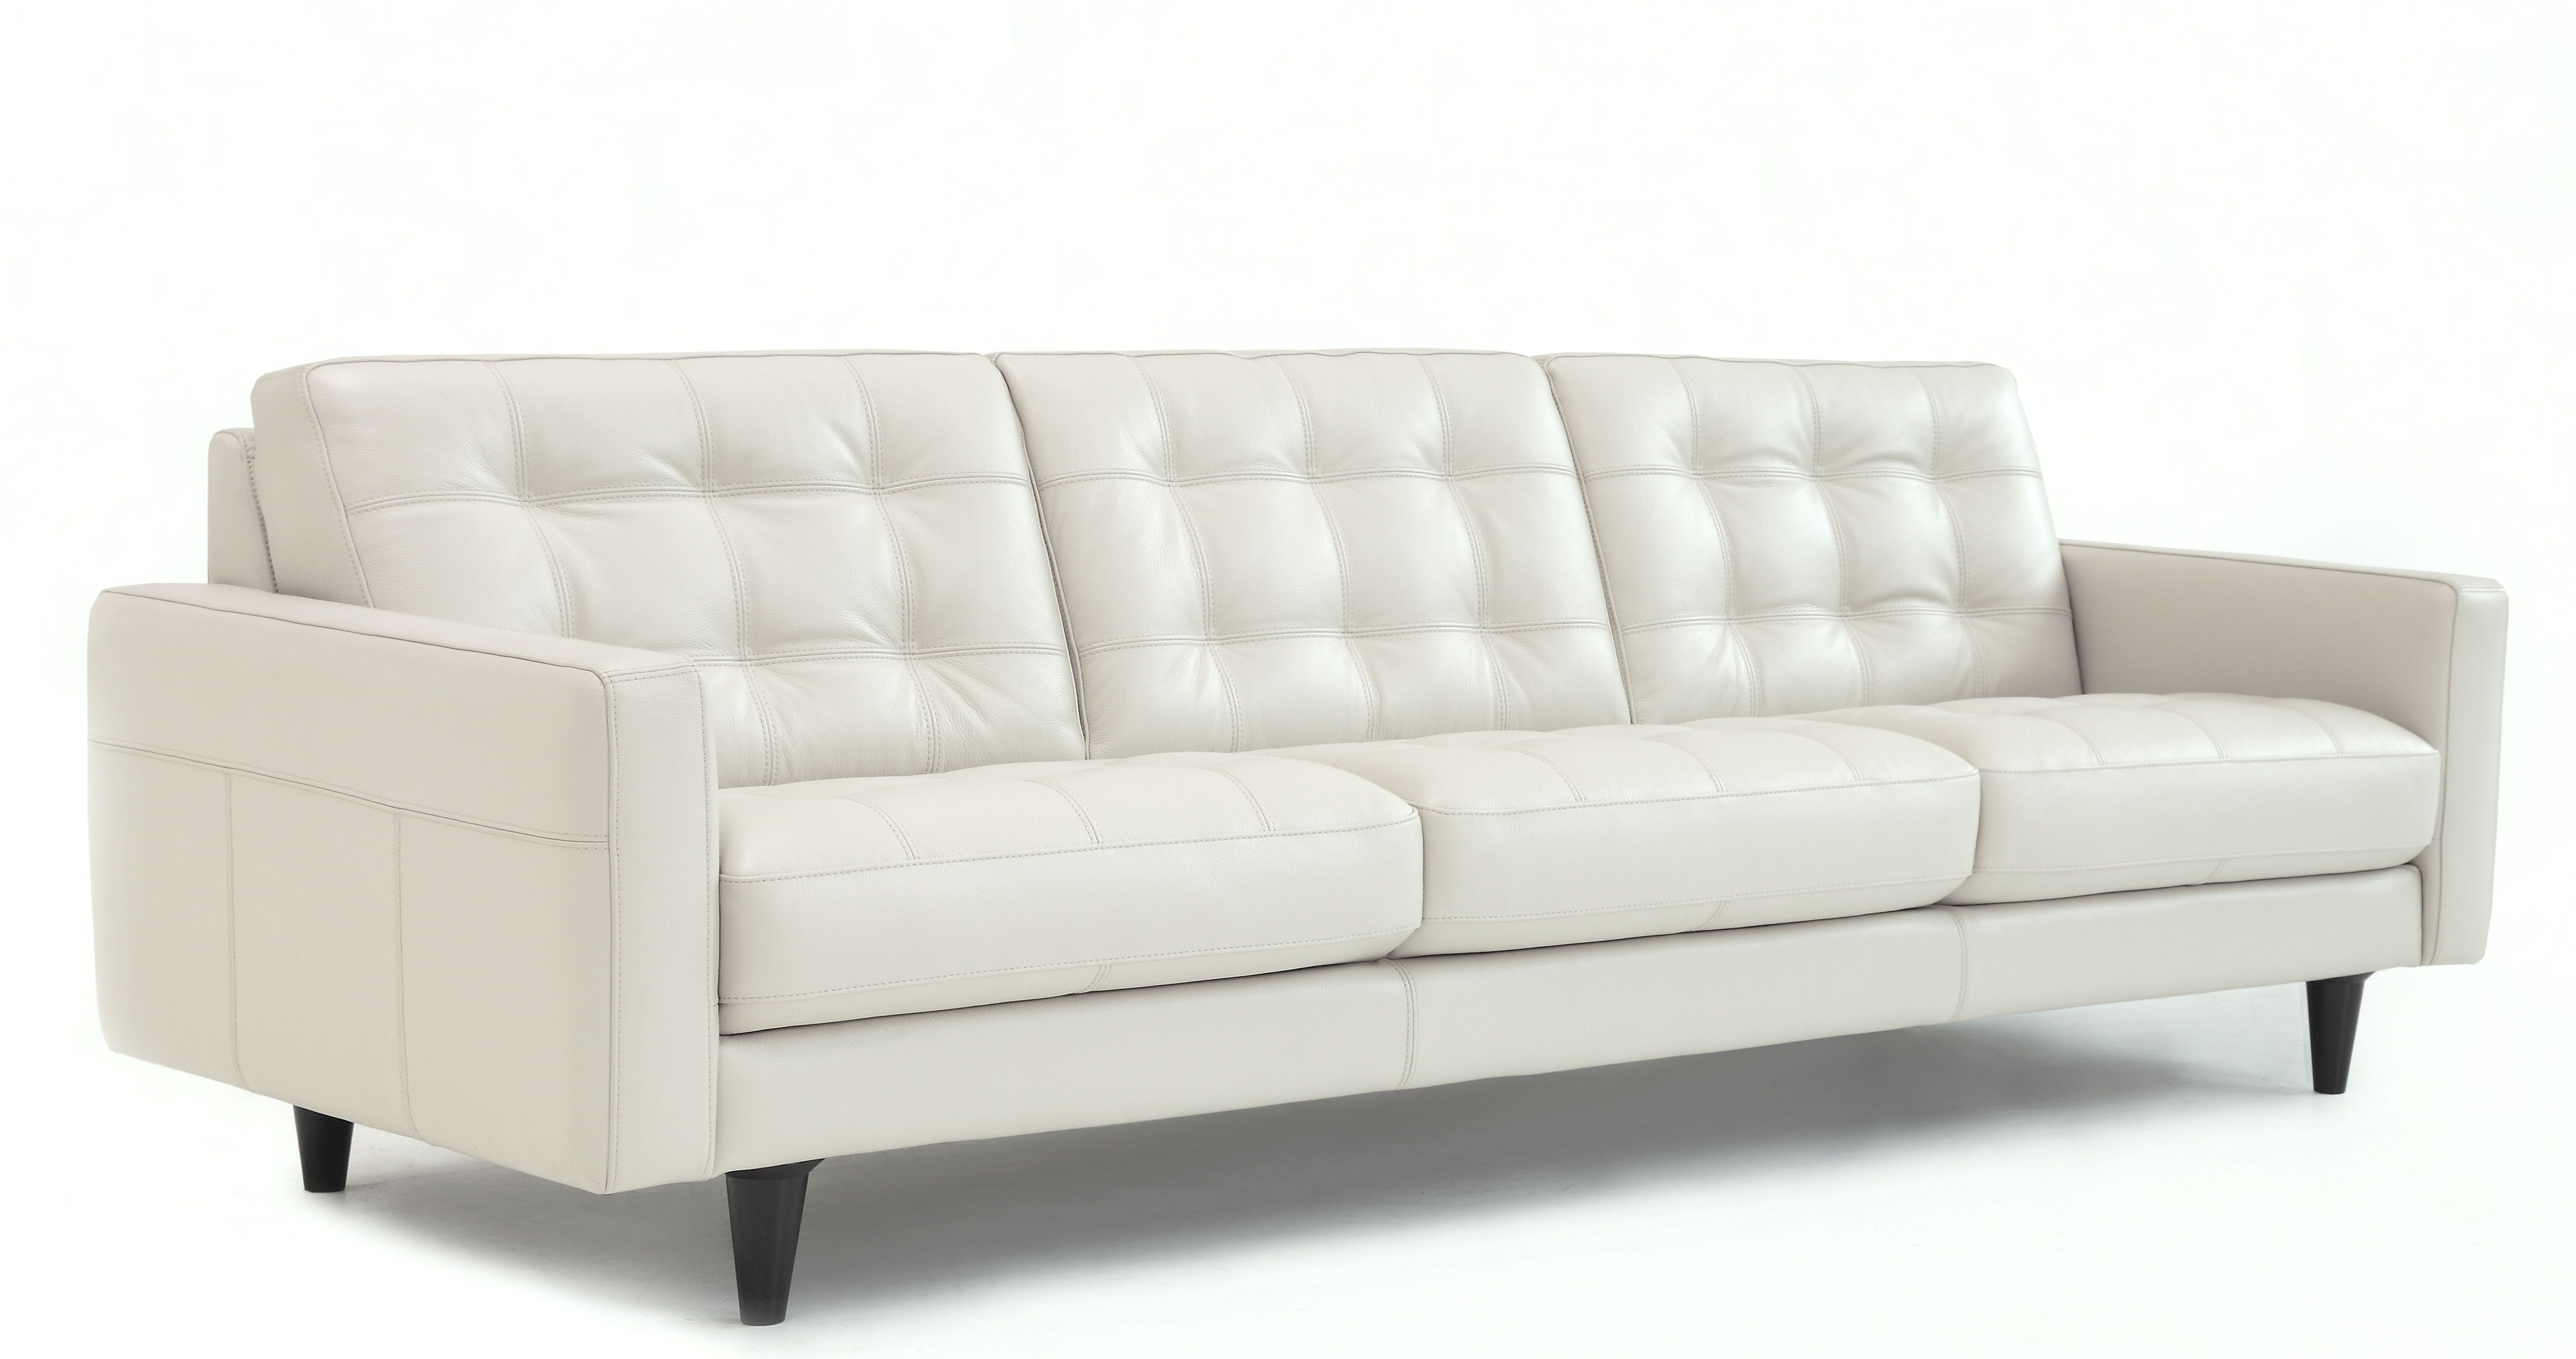 Chateau Du0027ax Italian Leather Tufted Sofa U217